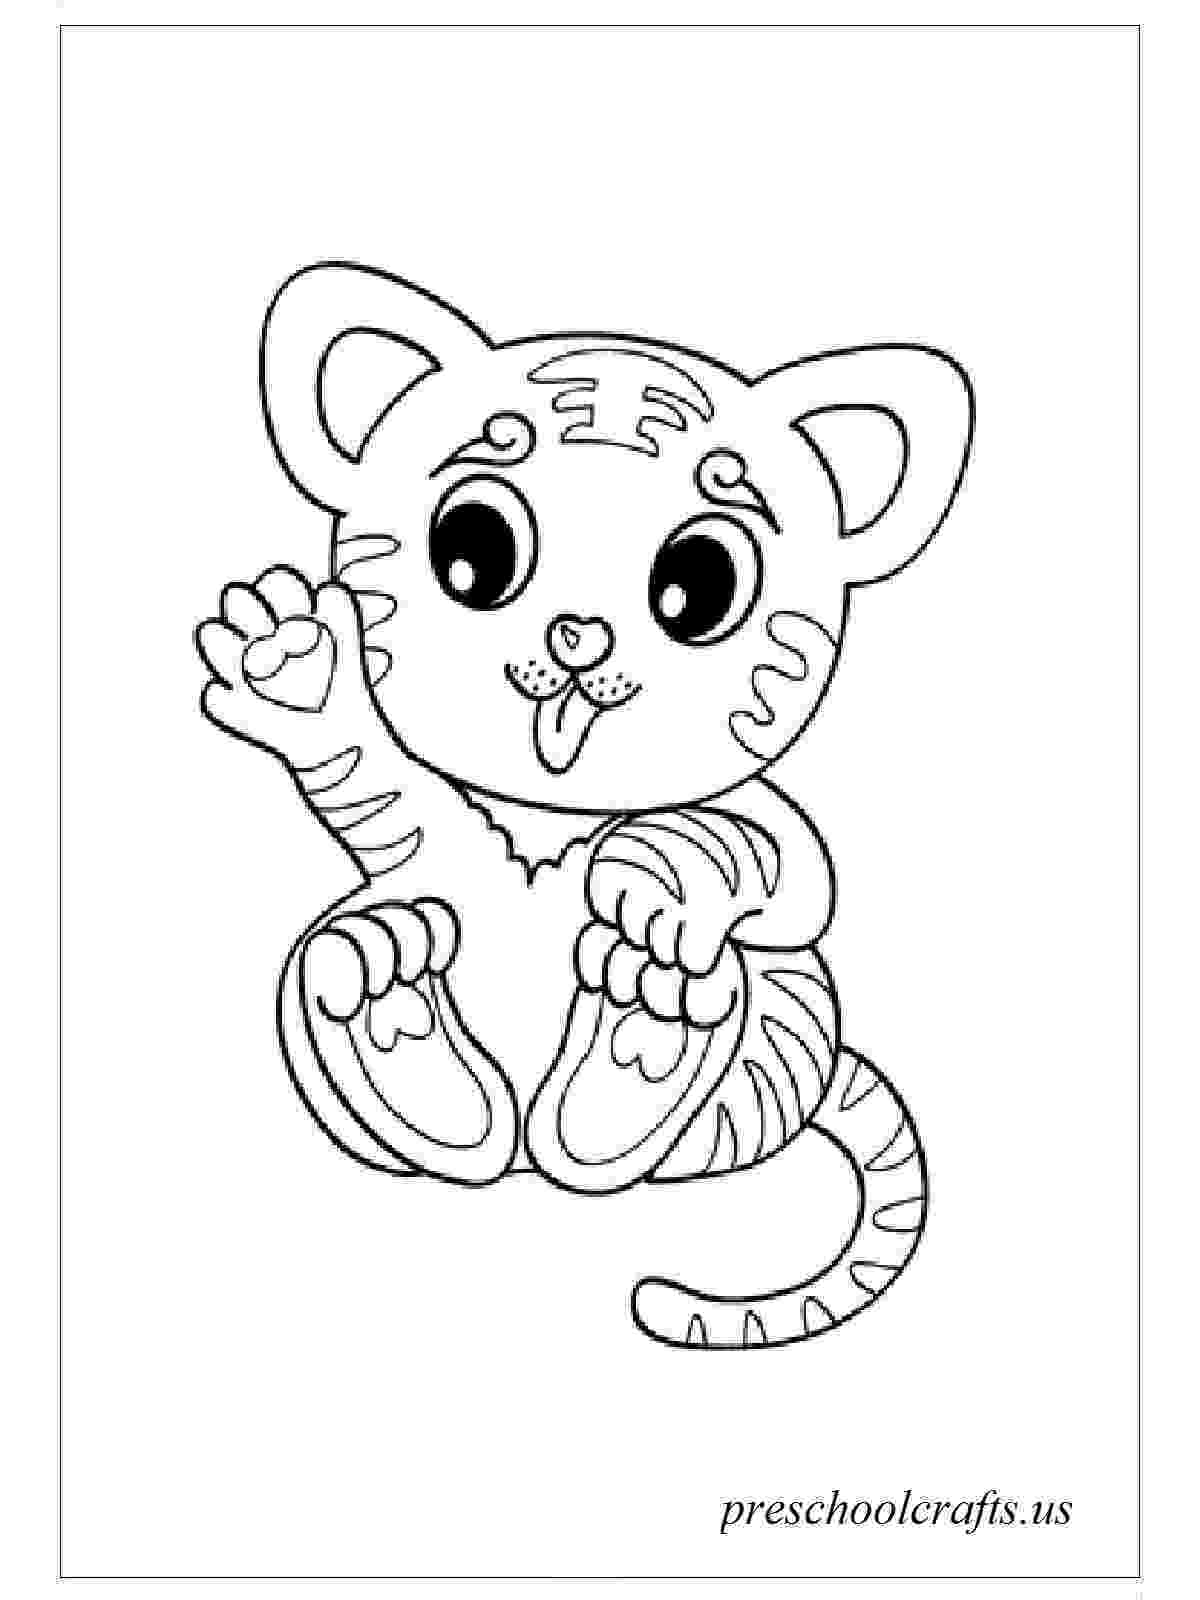 tiger without stripes coloring page createzebra picture scissor practice larabeeuk without page coloring tiger stripes